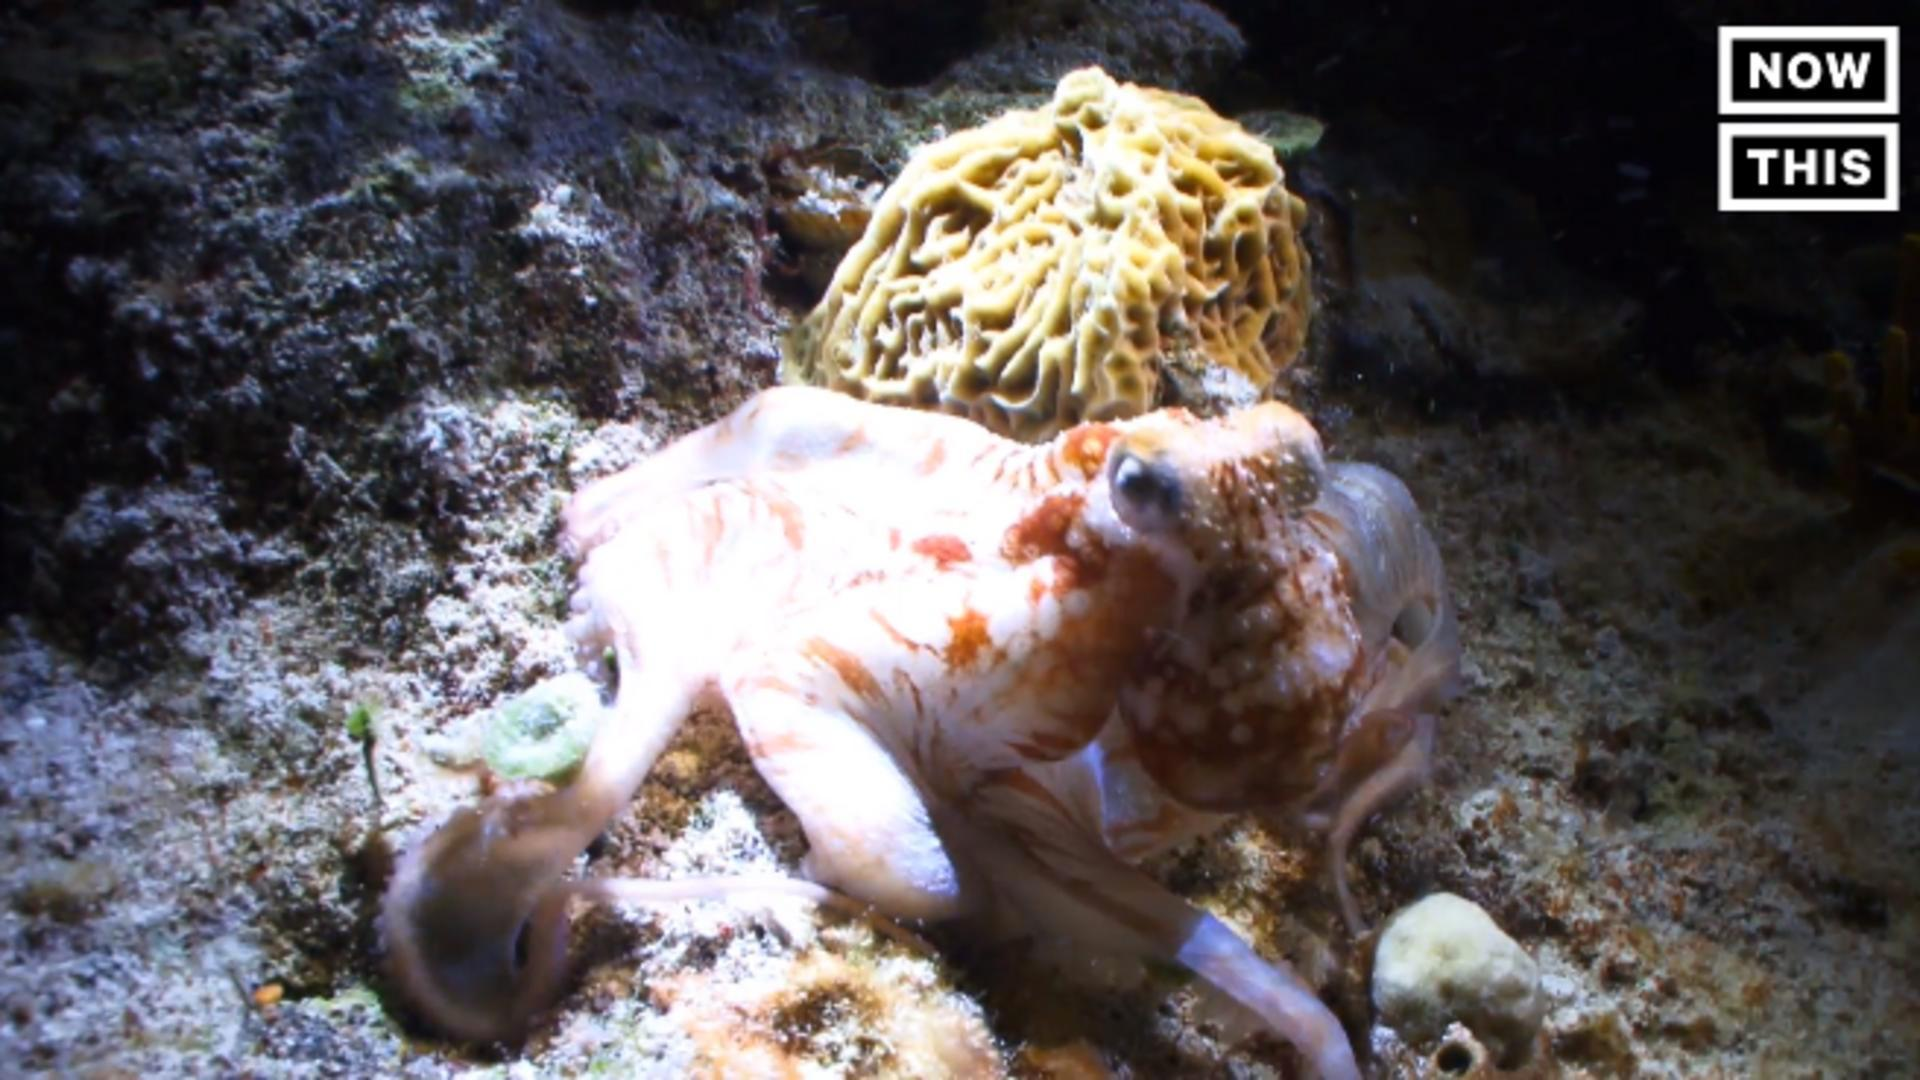 Octopi, Squids, And Cuttlefish Are Taking Over the Ocean